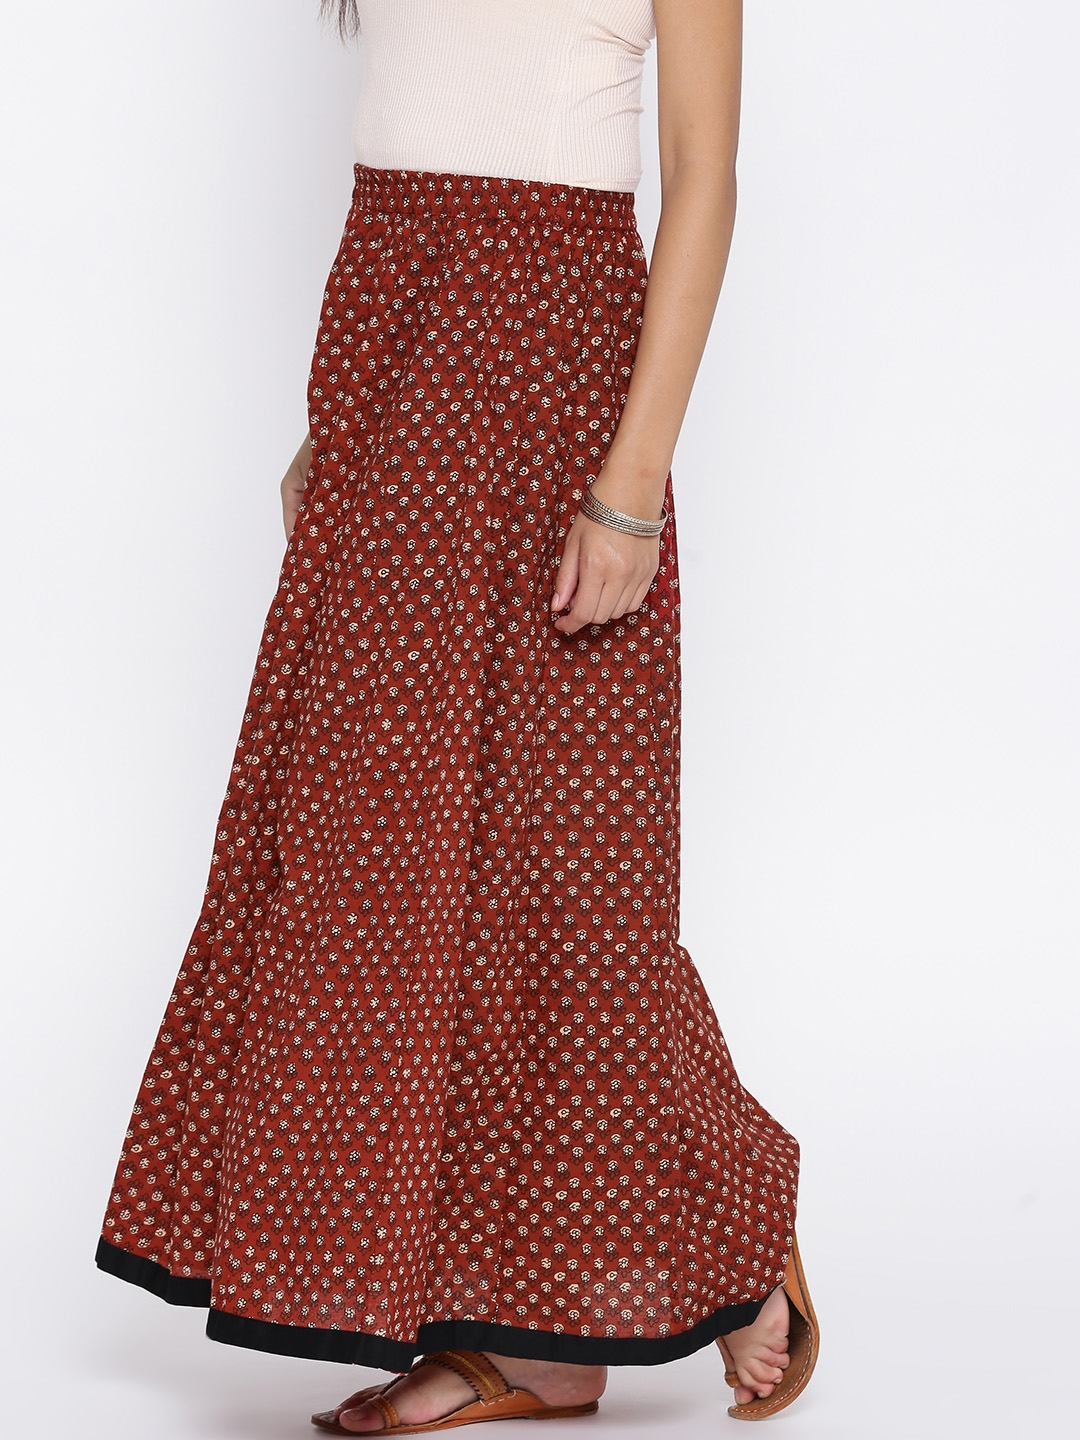 9a78e3d006 Buy Aum Brick Red Floral Print Flared Maxi Skirt - Skirts for Women ...